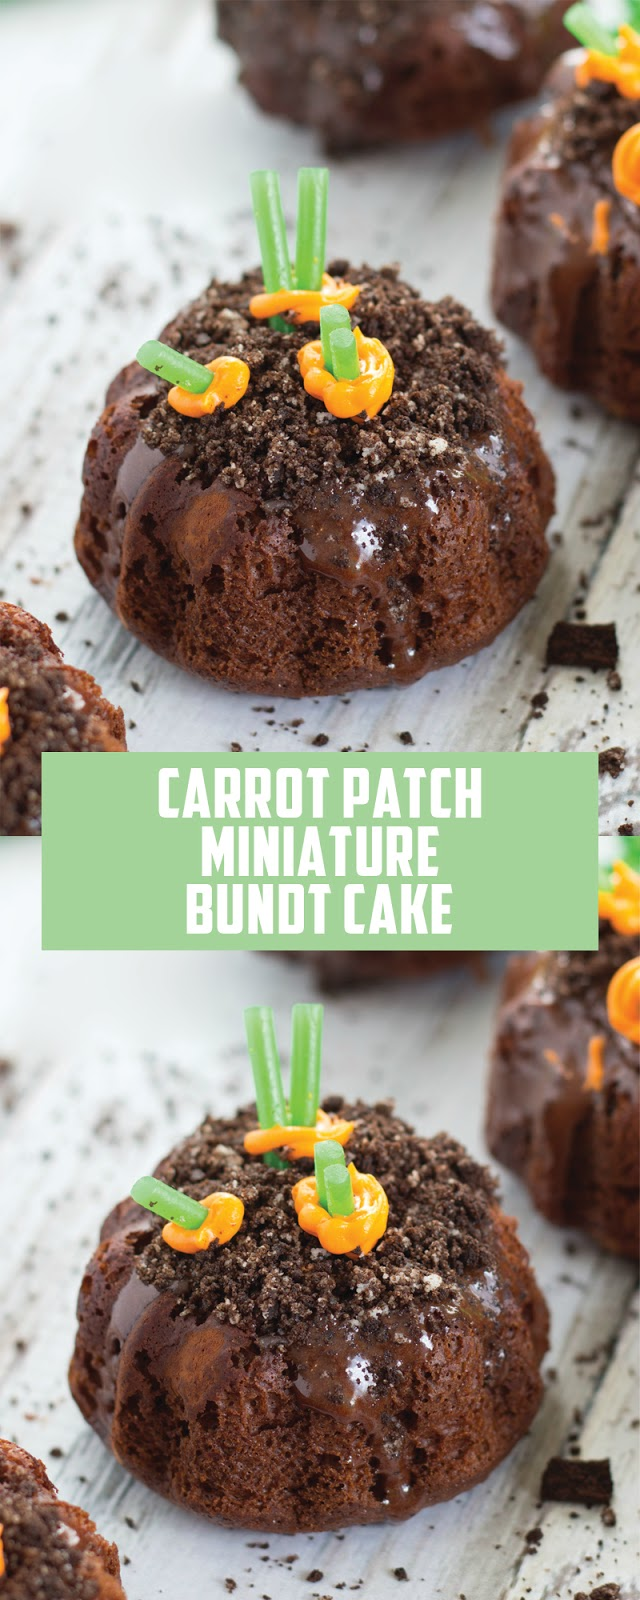 CARROT PATCH MINIATURE BUNDT CAKES